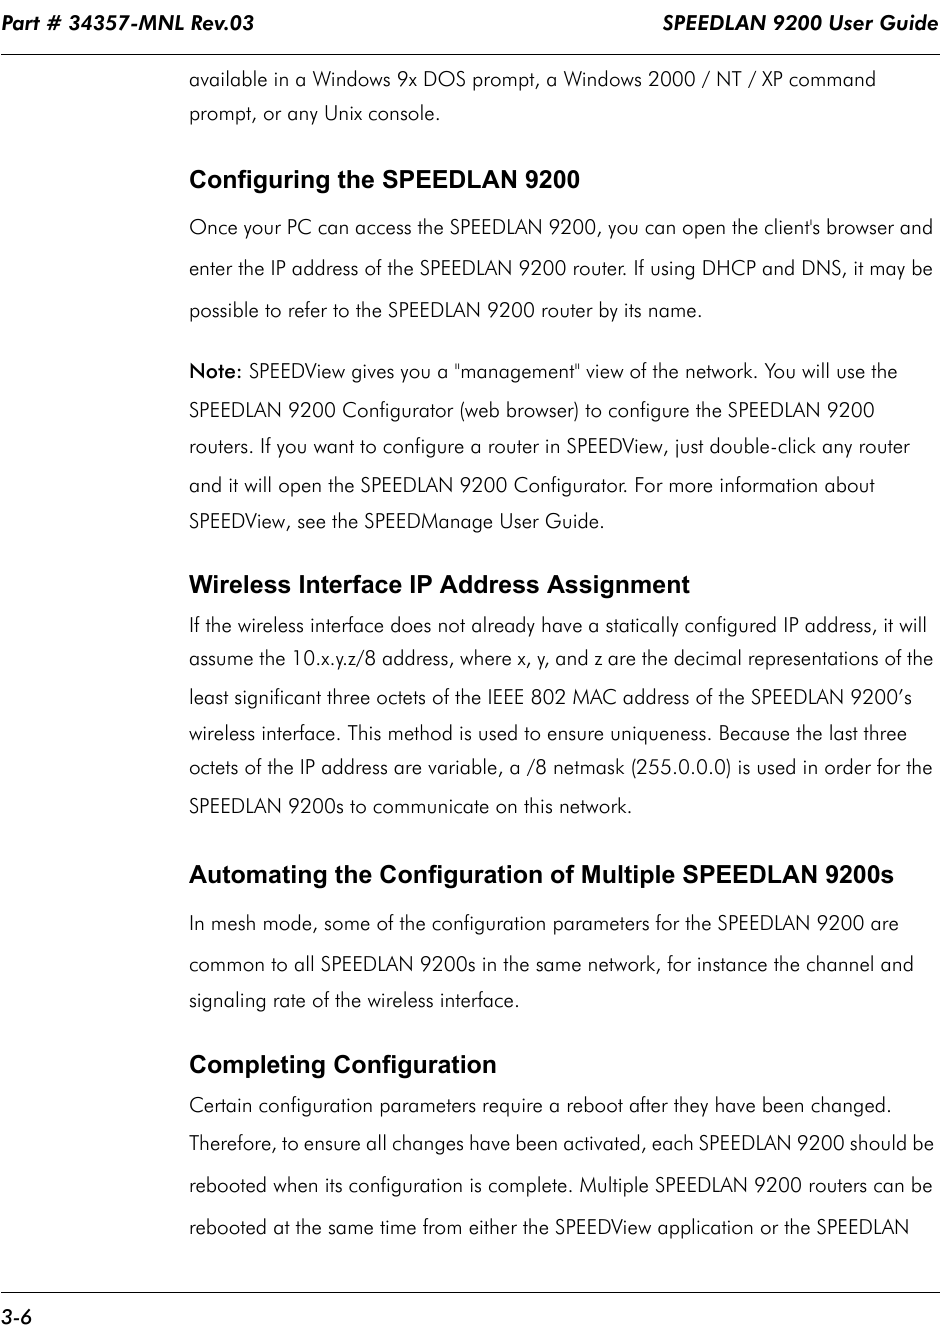 """Part # 34357-MNL Rev.03                                                                   SPEEDLAN 9200 User Guide 3-6available in a Windows 9x DOS prompt, a Windows 2000 / NT / XP command prompt, or any Unix console. Configuring the SPEEDLAN 9200Once your PC can access the SPEEDLAN 9200, you can open the client's browser and enter the IP address of the SPEEDLAN 9200 router. If using DHCP and DNS, it may be possible to refer to the SPEEDLAN 9200 router by its name. Note: SPEEDView gives you a """"management"""" view of the network. You will use the SPEEDLAN 9200 Configurator (web browser) to configure the SPEEDLAN 9200 routers. If you want to configure a router in SPEEDView, just double-click any router and it will open the SPEEDLAN 9200 Configurator. For more information about SPEEDView, see the SPEEDManage User Guide.Wireless Interface IP Address AssignmentIf the wireless interface does not already have a statically configured IP address, it will assume the 10.x.y.z/8 address, where x, y, and z are the decimal representations of the least significant three octets of the IEEE 802 MAC address of the SPEEDLAN 9200's wireless interface. This method is used to ensure uniqueness. Because the last three octets of the IP address are variable, a /8 netmask (255.0.0.0) is used in order for the SPEEDLAN 9200s to communicate on this network.  Automating the Configuration of Multiple SPEEDLAN 9200sIn mesh mode, some of the configuration parameters for the SPEEDLAN 9200 are common to all SPEEDLAN 9200s in the same network, for instance the channel and signaling rate of the wireless interface.  Completing ConfigurationCertain configuration parameters require a reboot after they have been changed.  Therefore, to ensure all changes have been activated, each SPEEDLAN 9200 should be rebooted when its configuration is complete. Multiple SPEEDLAN 9200 routers can be rebooted at the same time from either the SPEEDView application or the SPEEDLAN"""